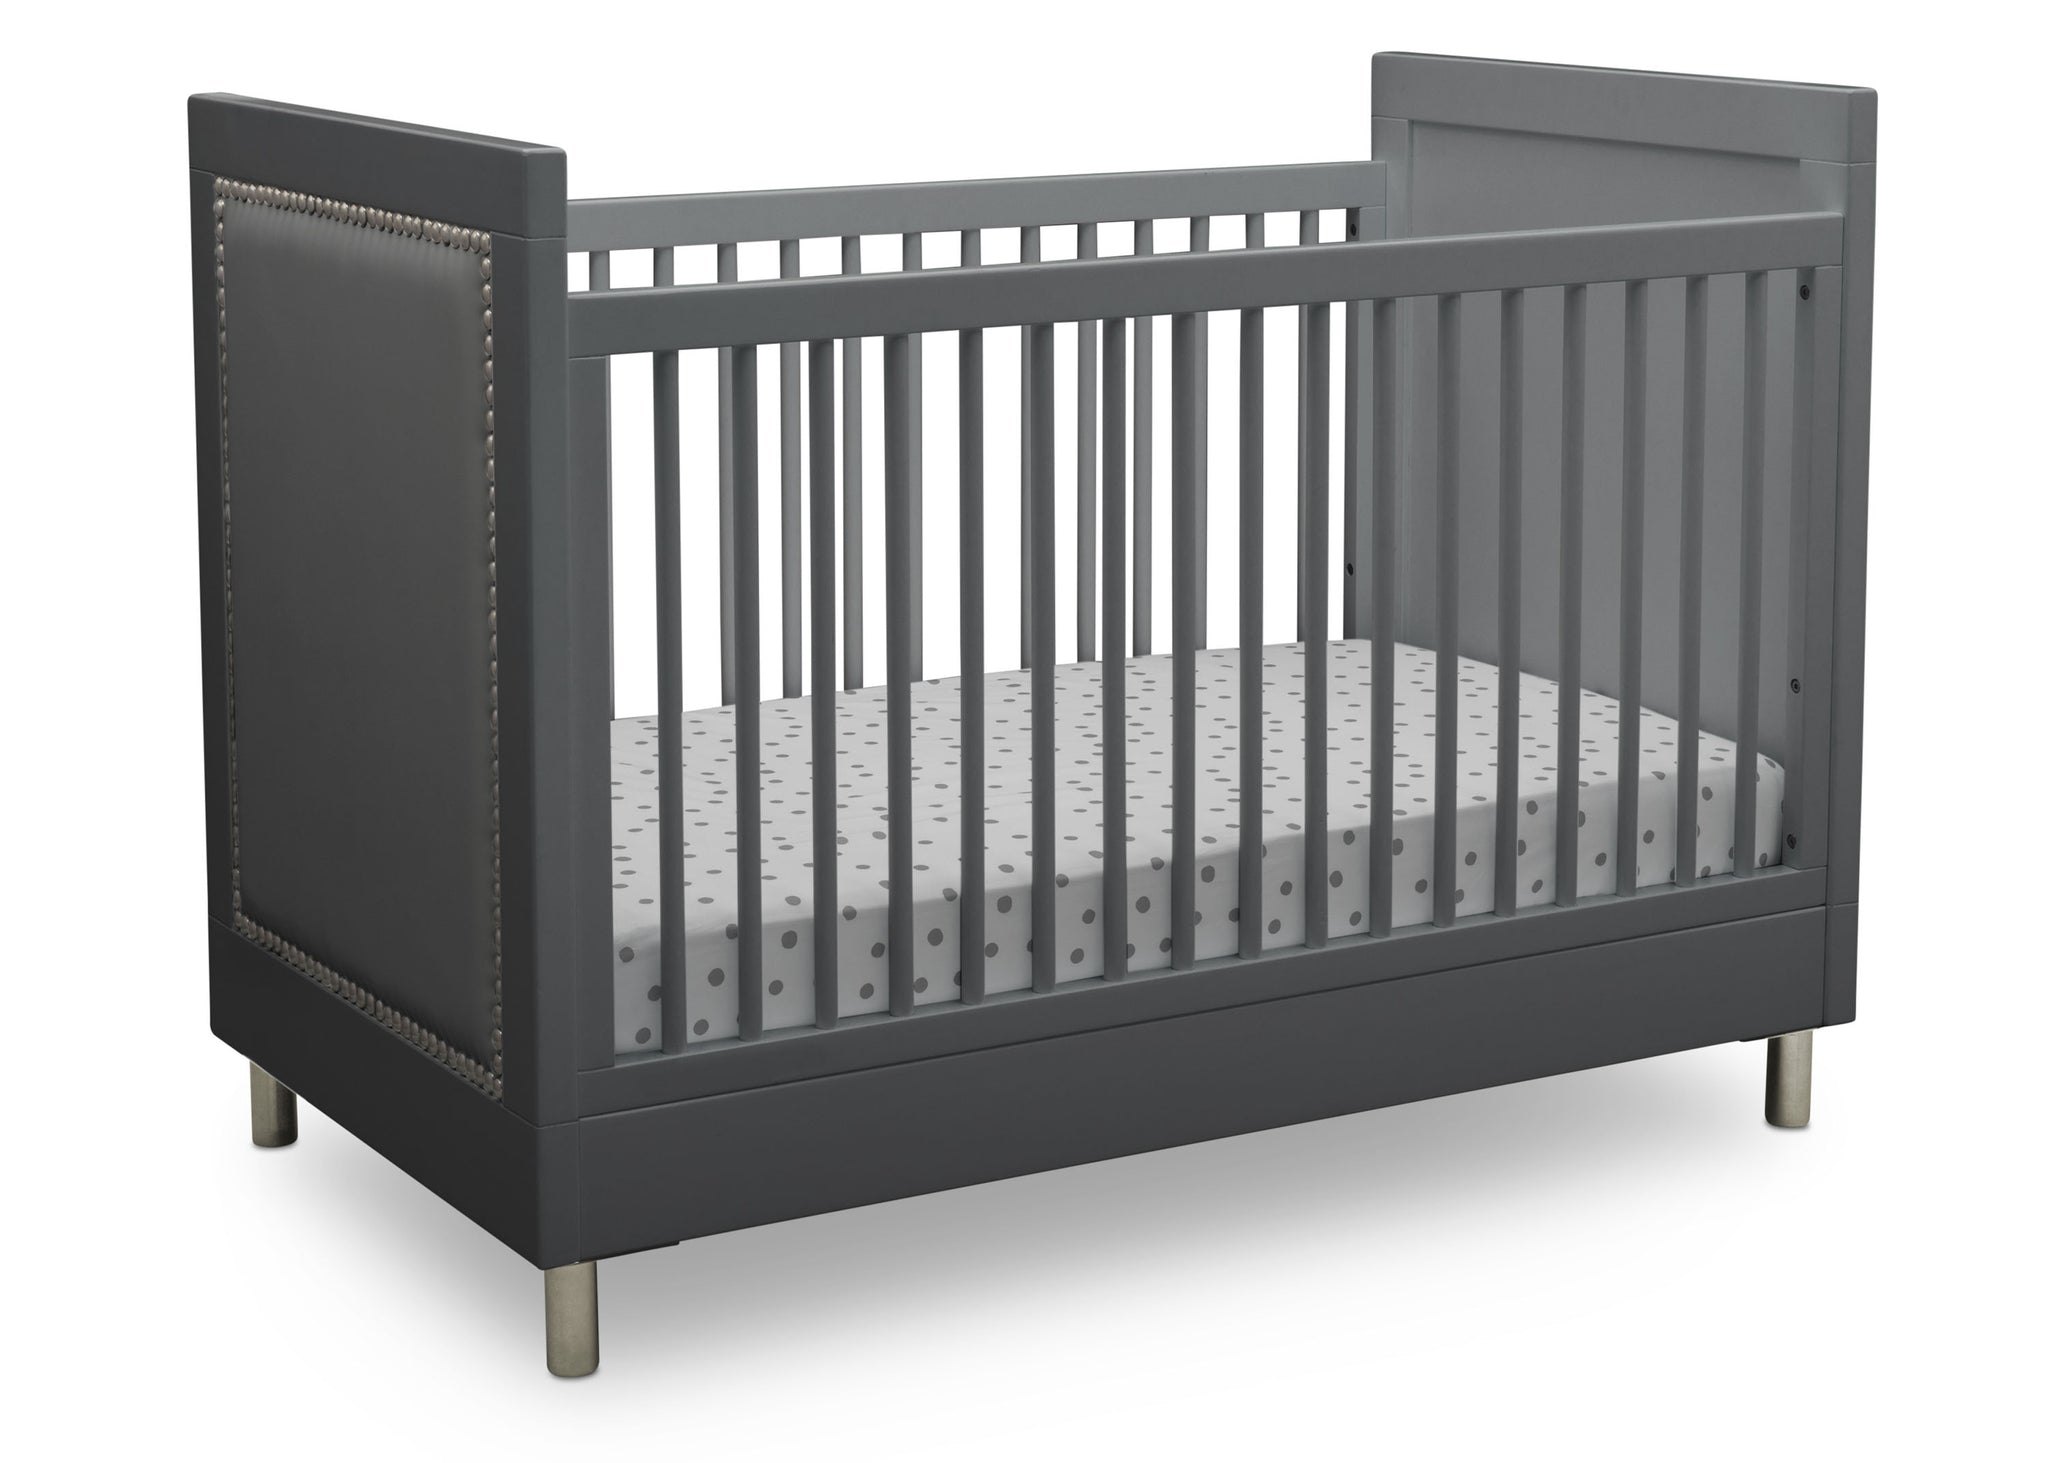 Simmons Kids Charcoal Grey (1323) Avery 3-in-1 Convertible Crib, Right Crib Silo View